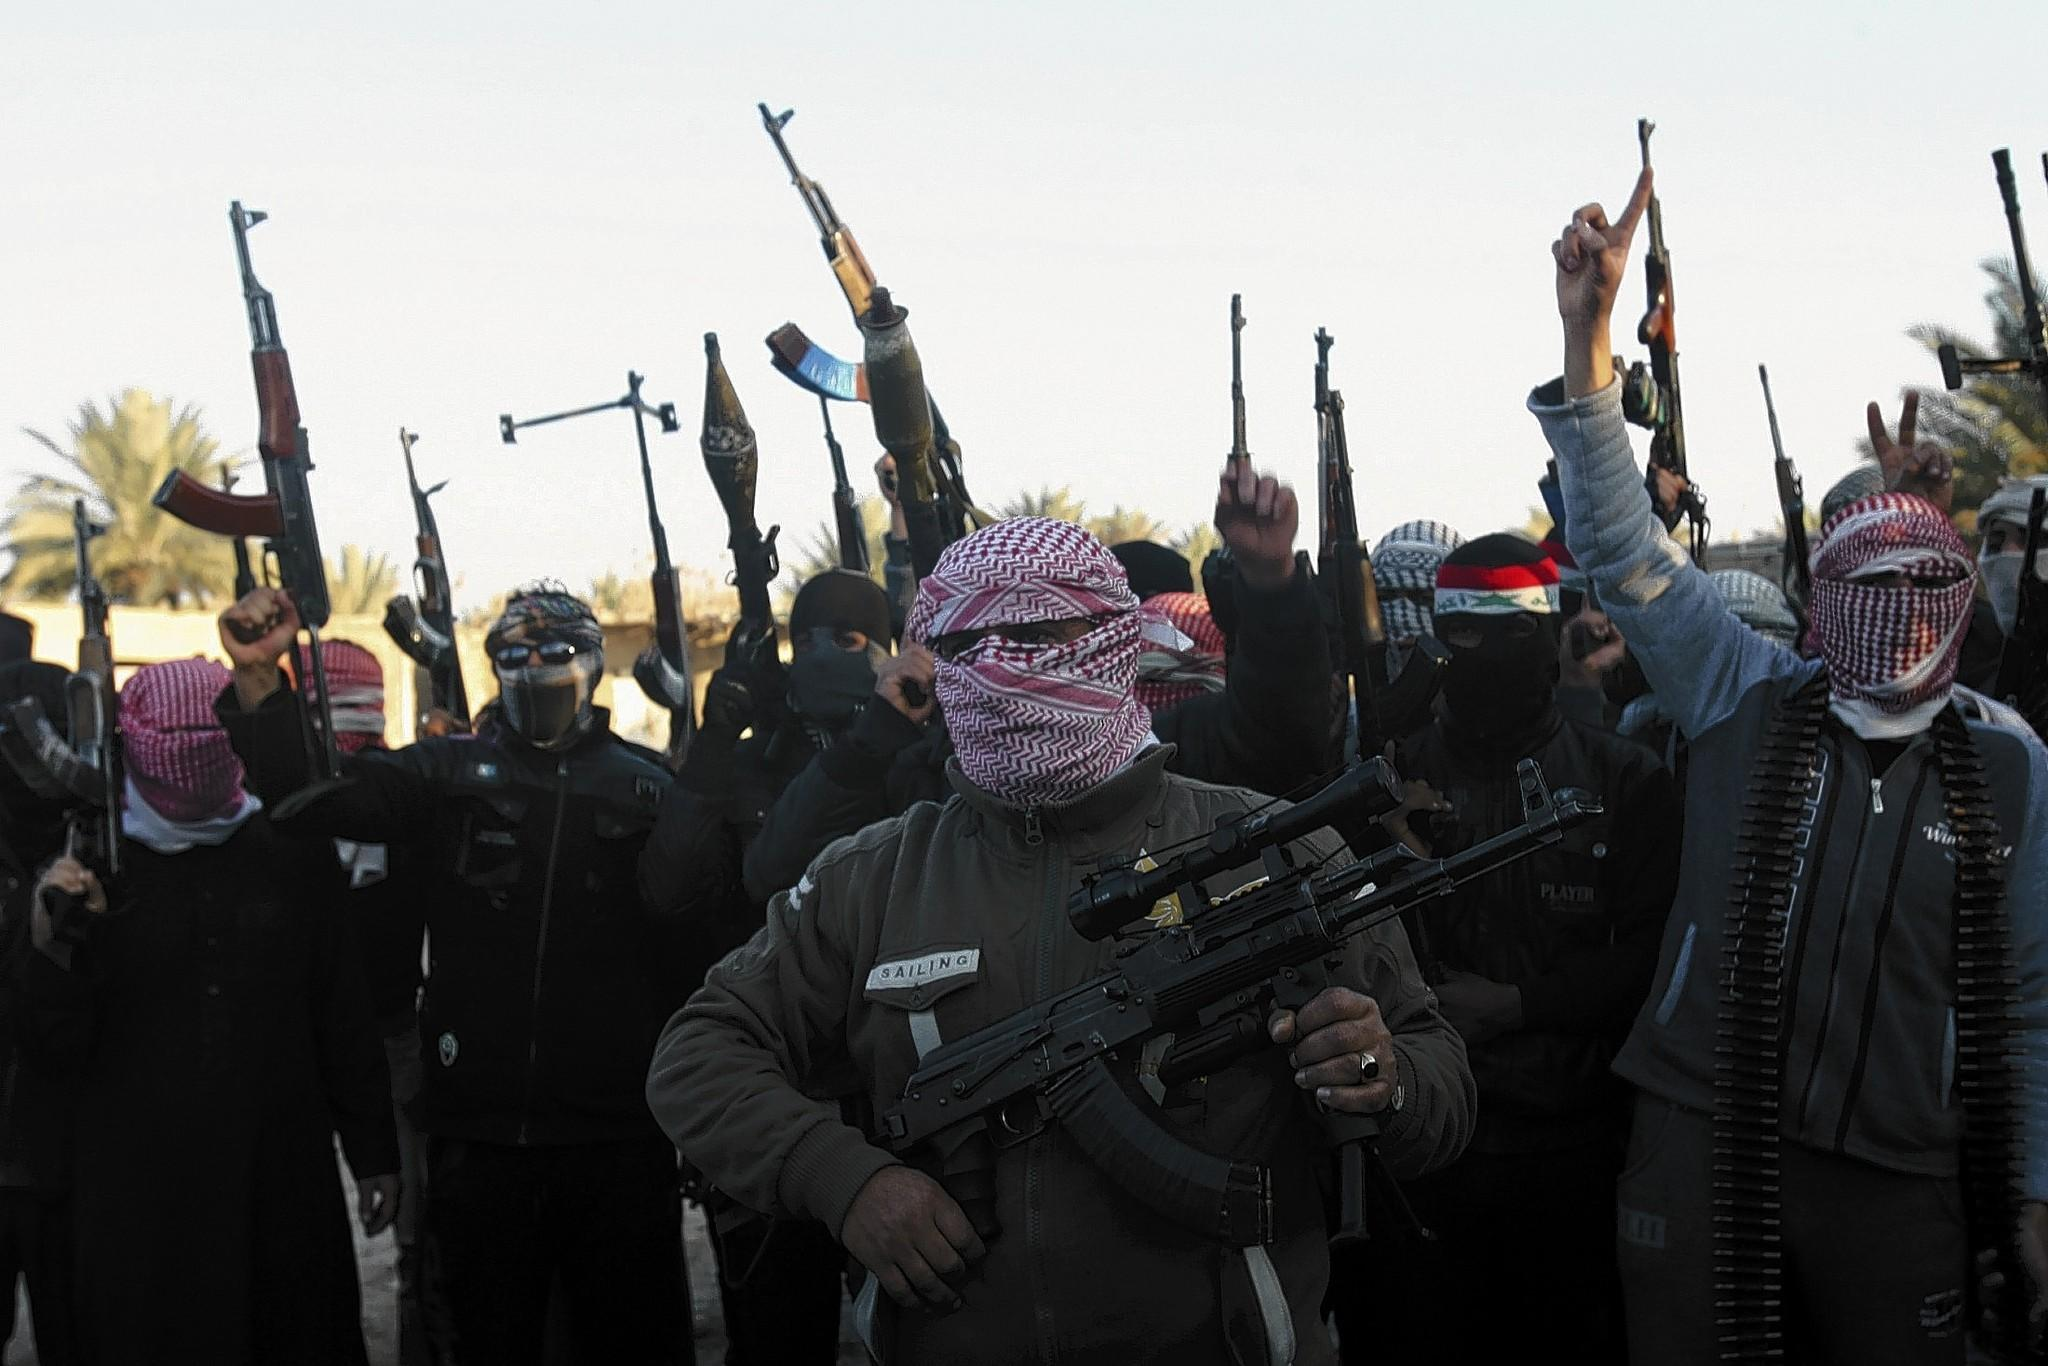 Masked gunmen chant slogans during a protest Tuesday in Fallujah against Iraq's Shiite-led government.